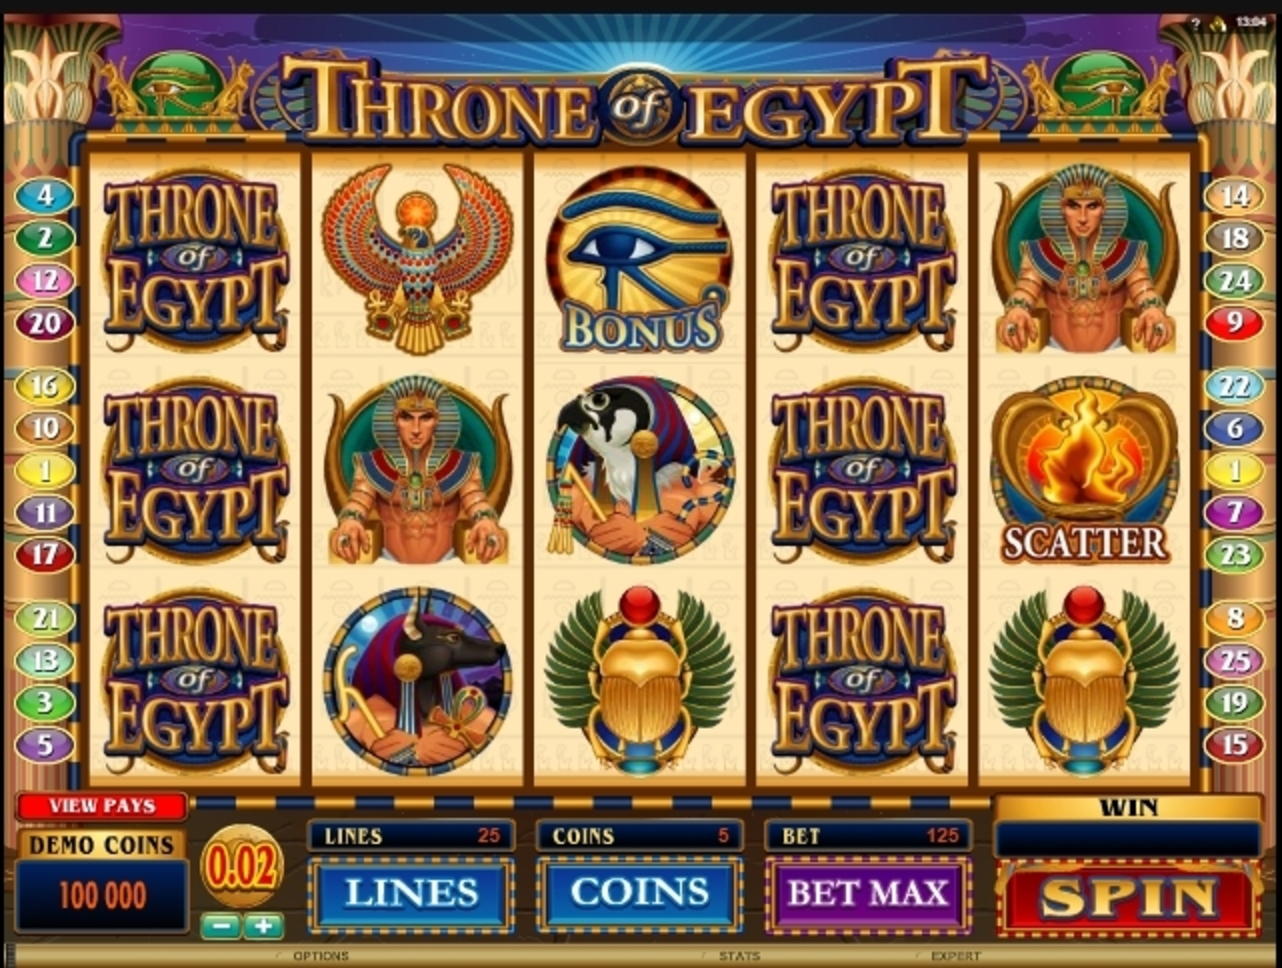 Reels in Throne of Egypt Slot Game by Microgaming